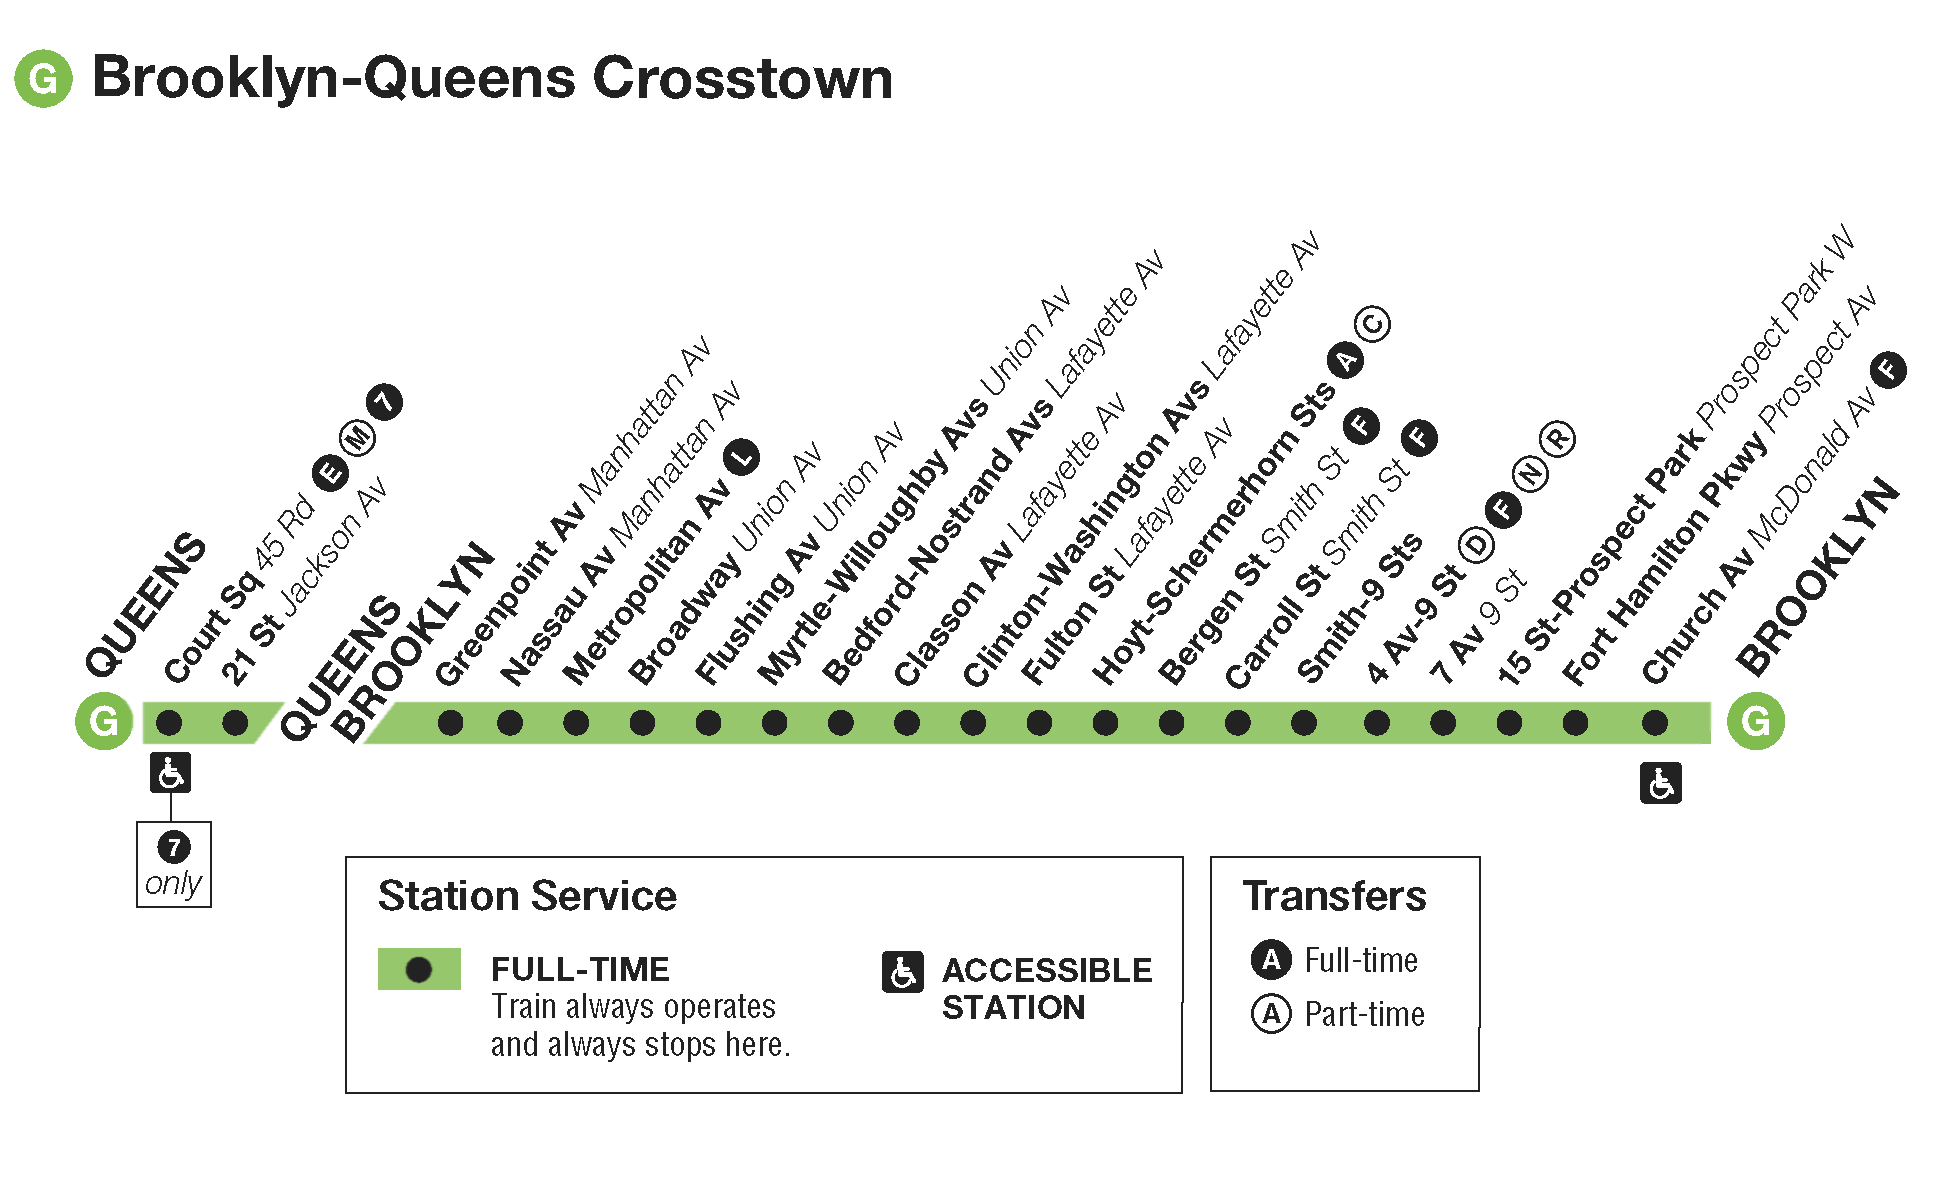 nyc-metro-route-g-brooklyn-queens-crosstown-map